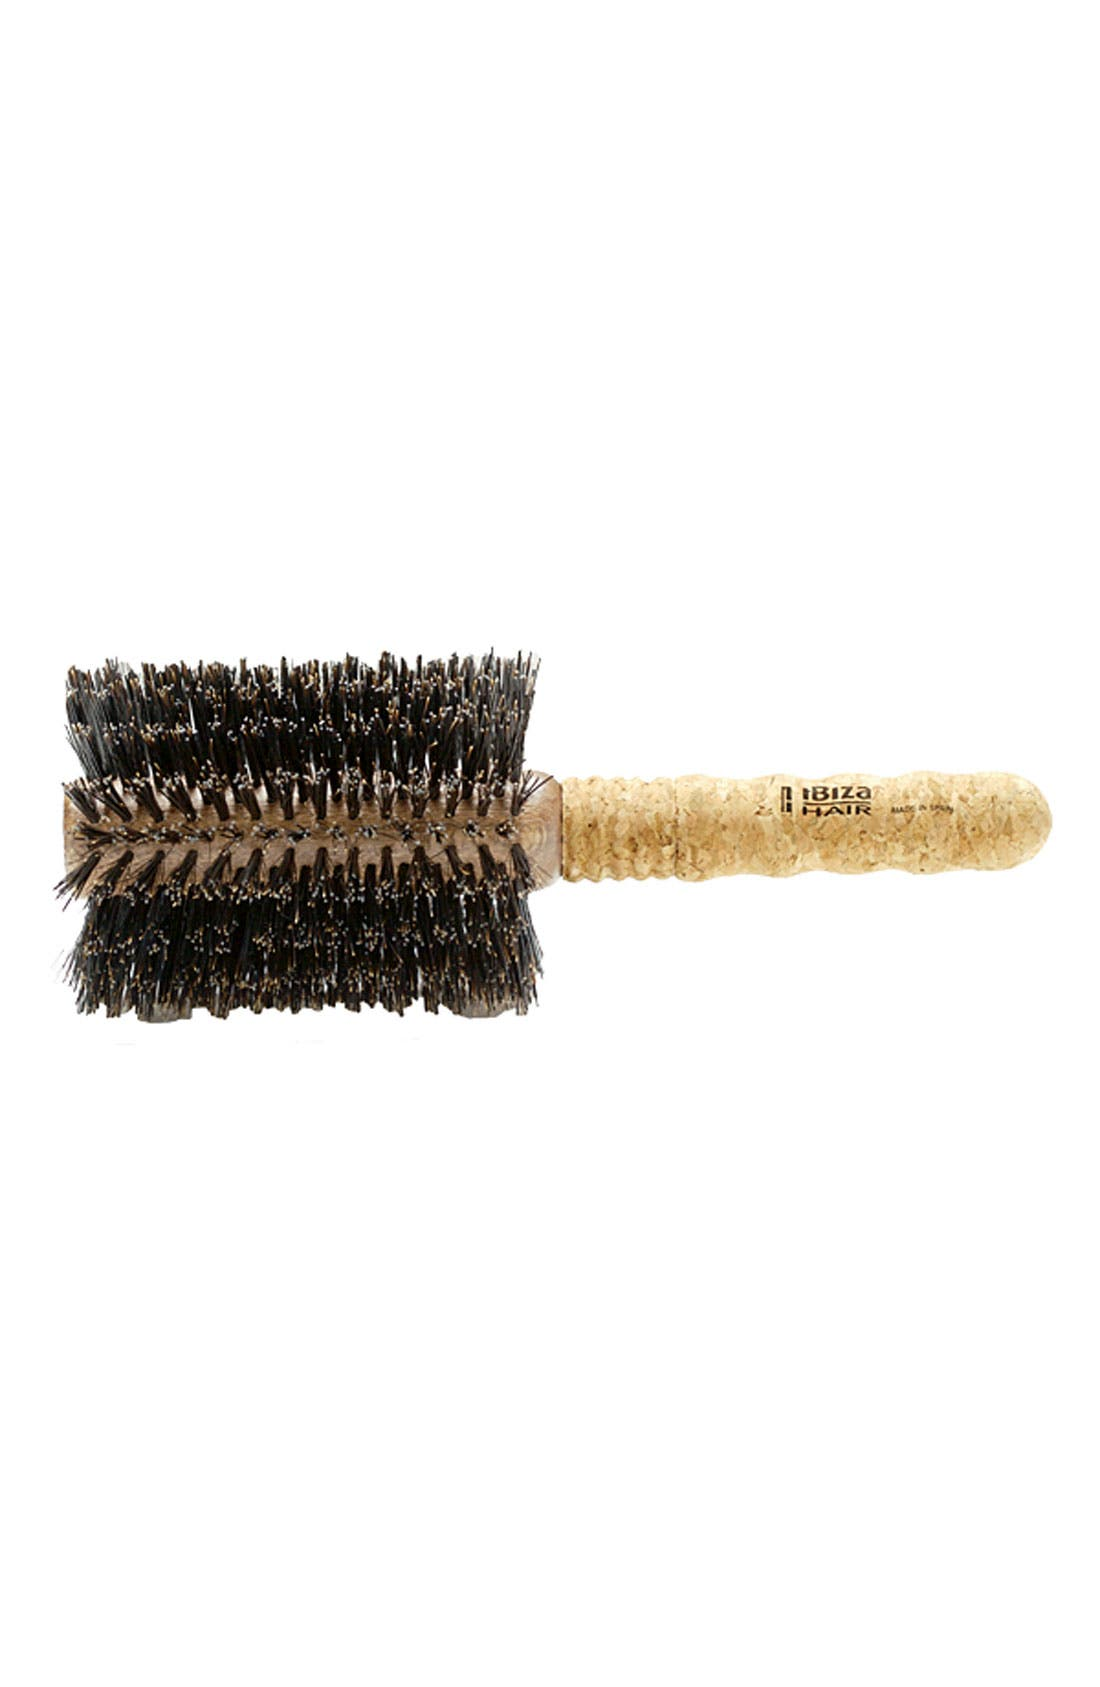 Ibiza Collection Extended Cork Round Brush (Extra Large)